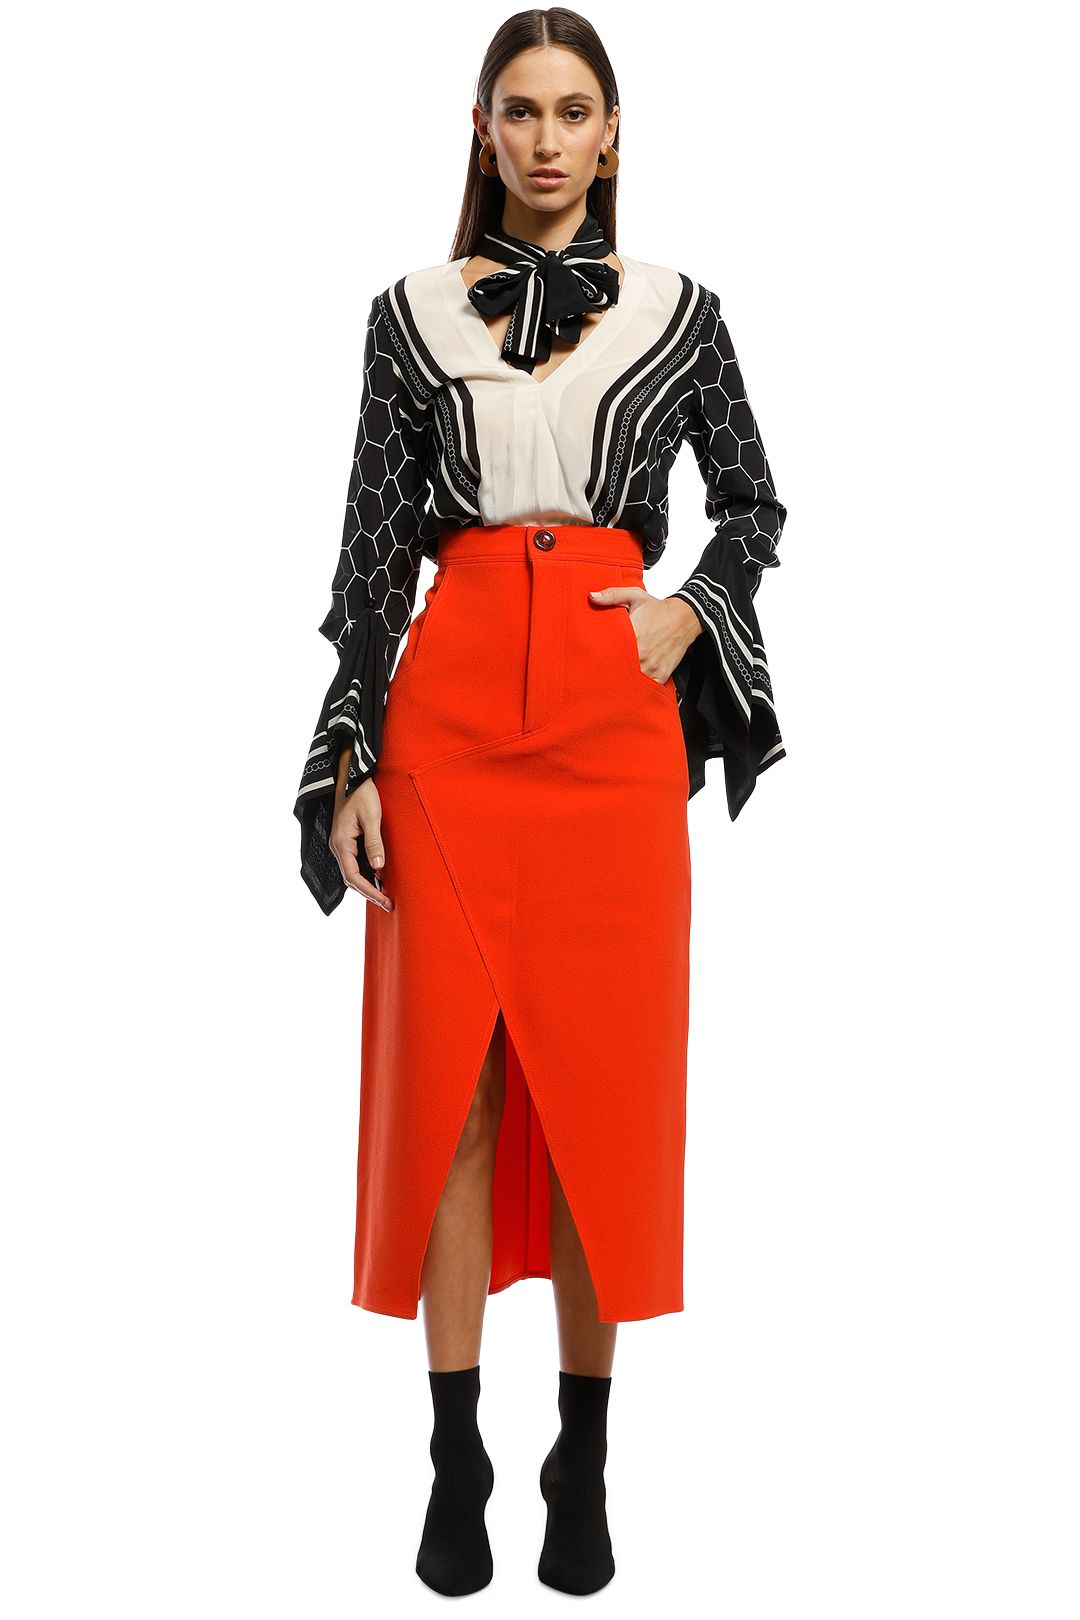 CMEO Collective - High Heart Skirt - Orange - Front